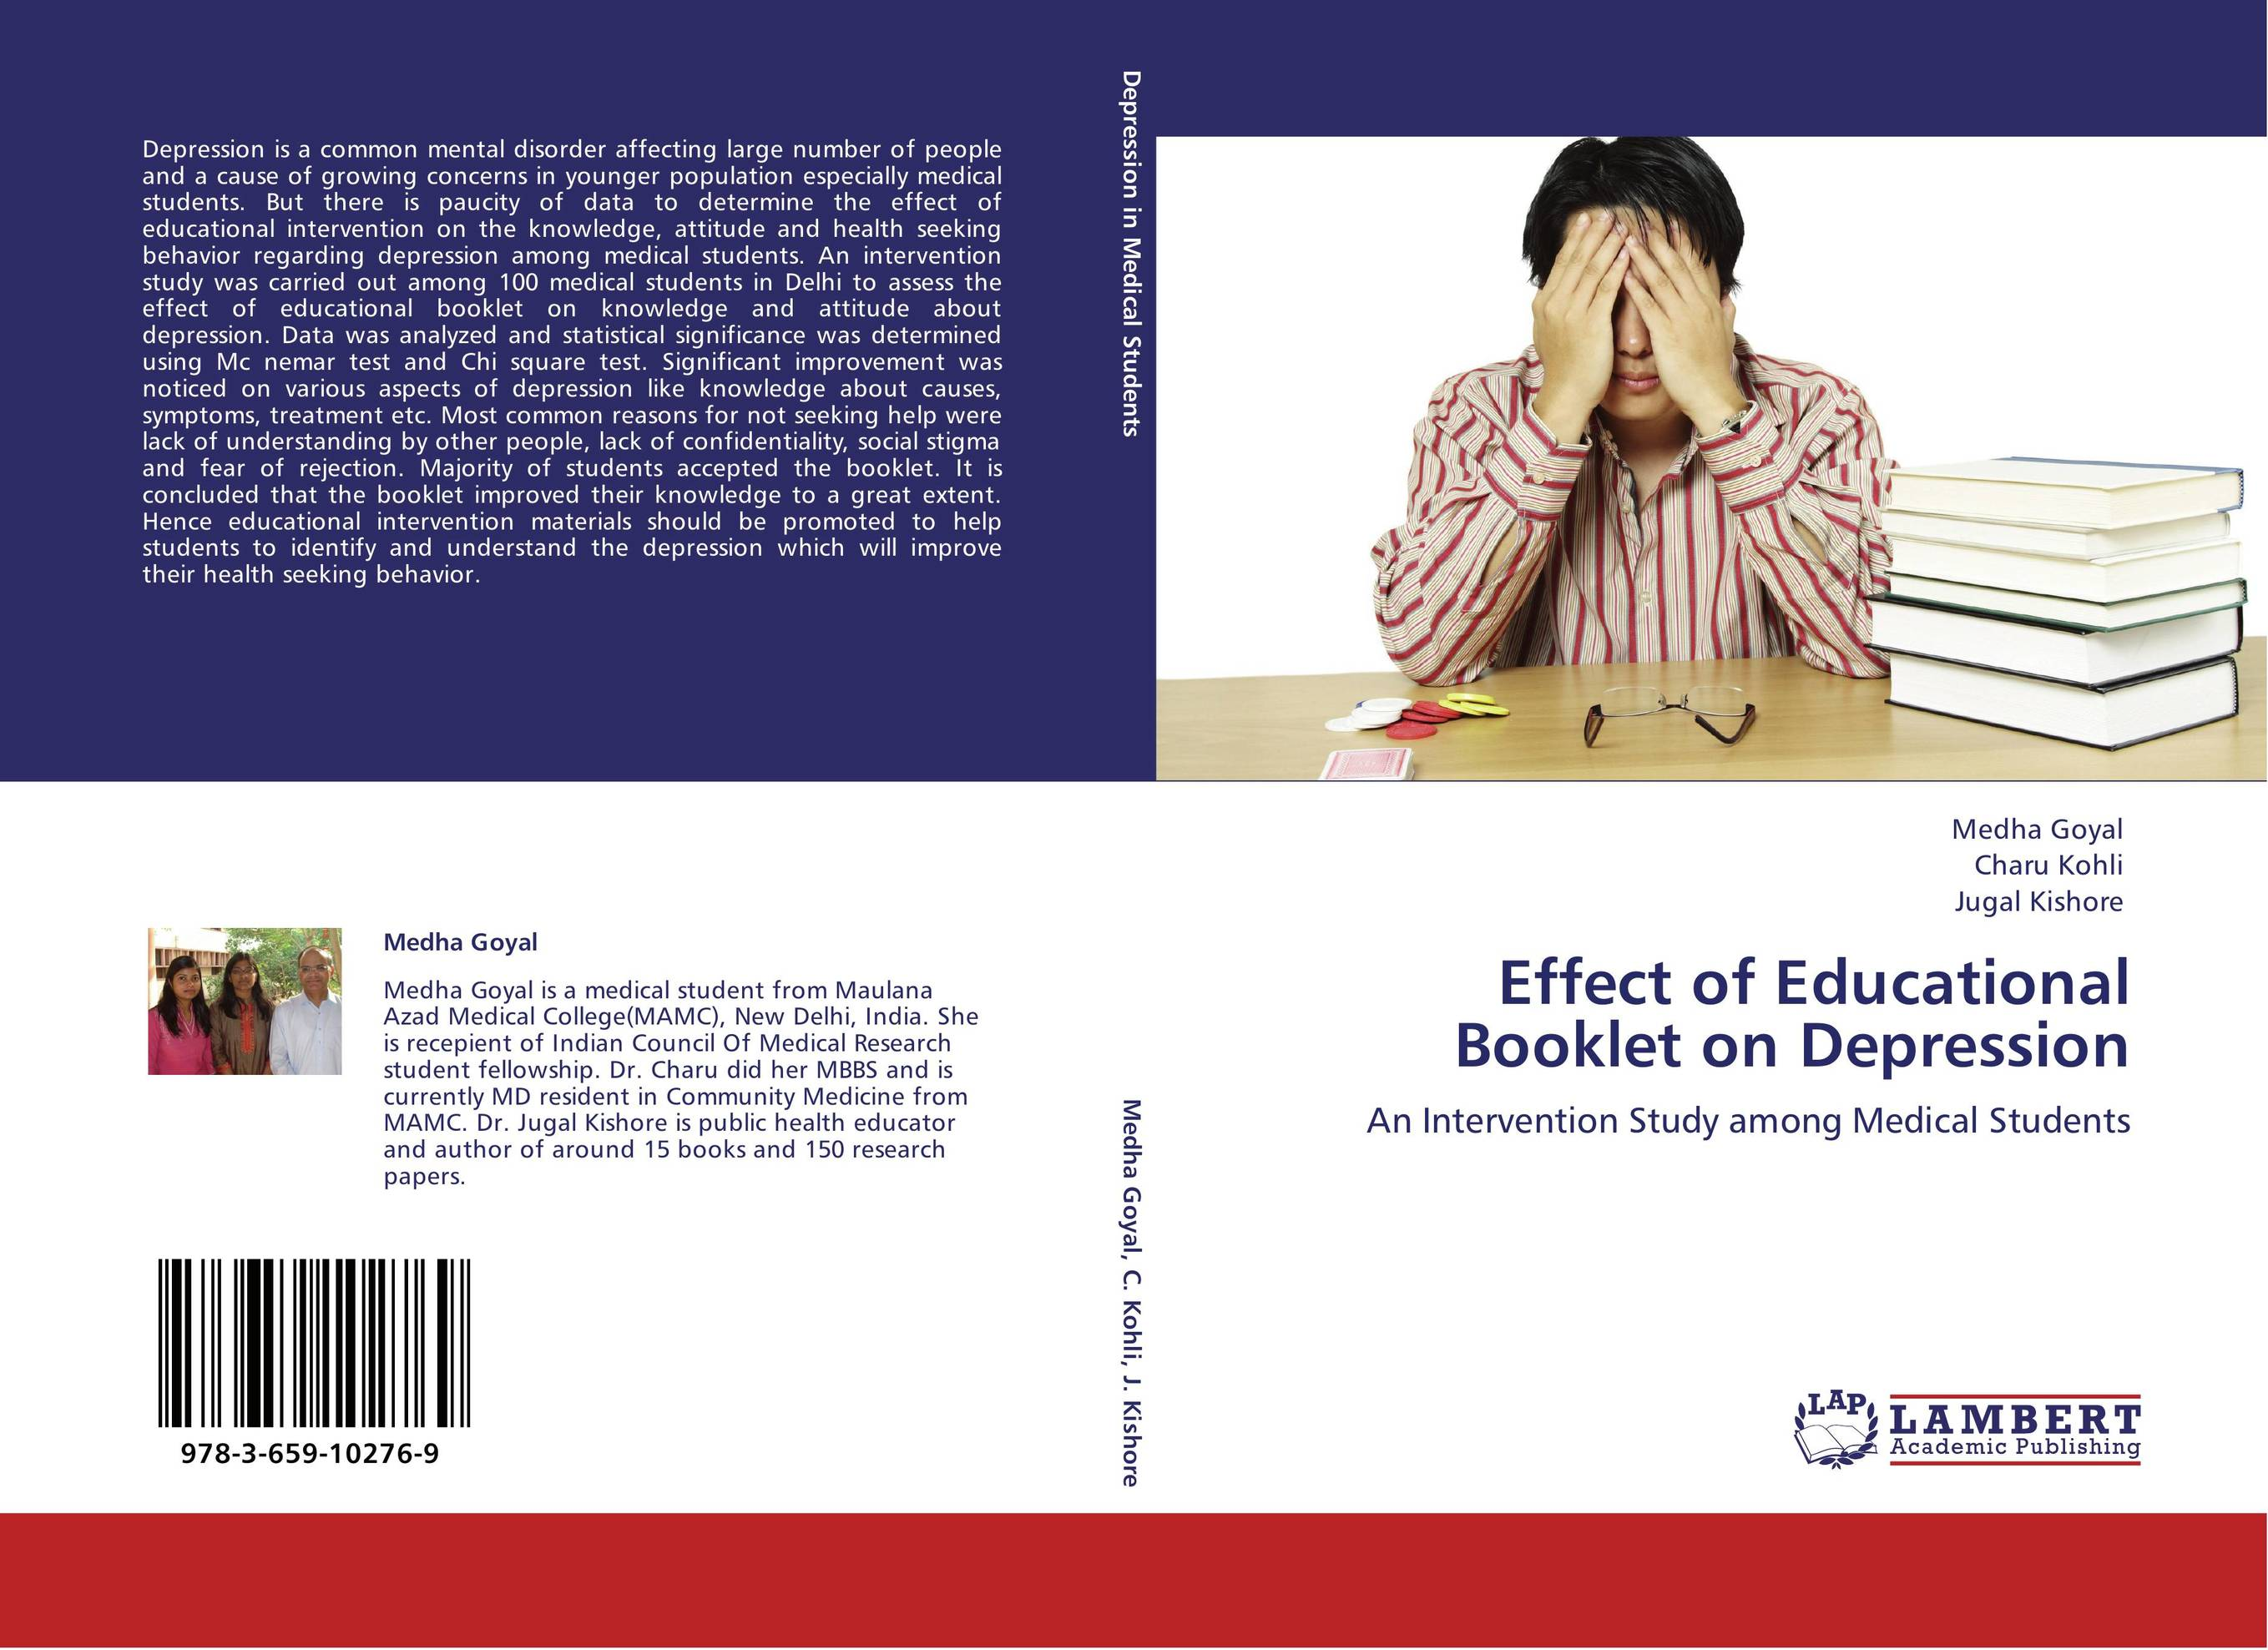 effects of early love relationship among students Nearly 15 million high school students nationwide experience physical abuse from a dating partner in a single year one in three adolescents in the us is a victim of physical, sexual, emotional or verbal abuse from a dating partner, a figure that far exceeds rates of other types of youth violence.